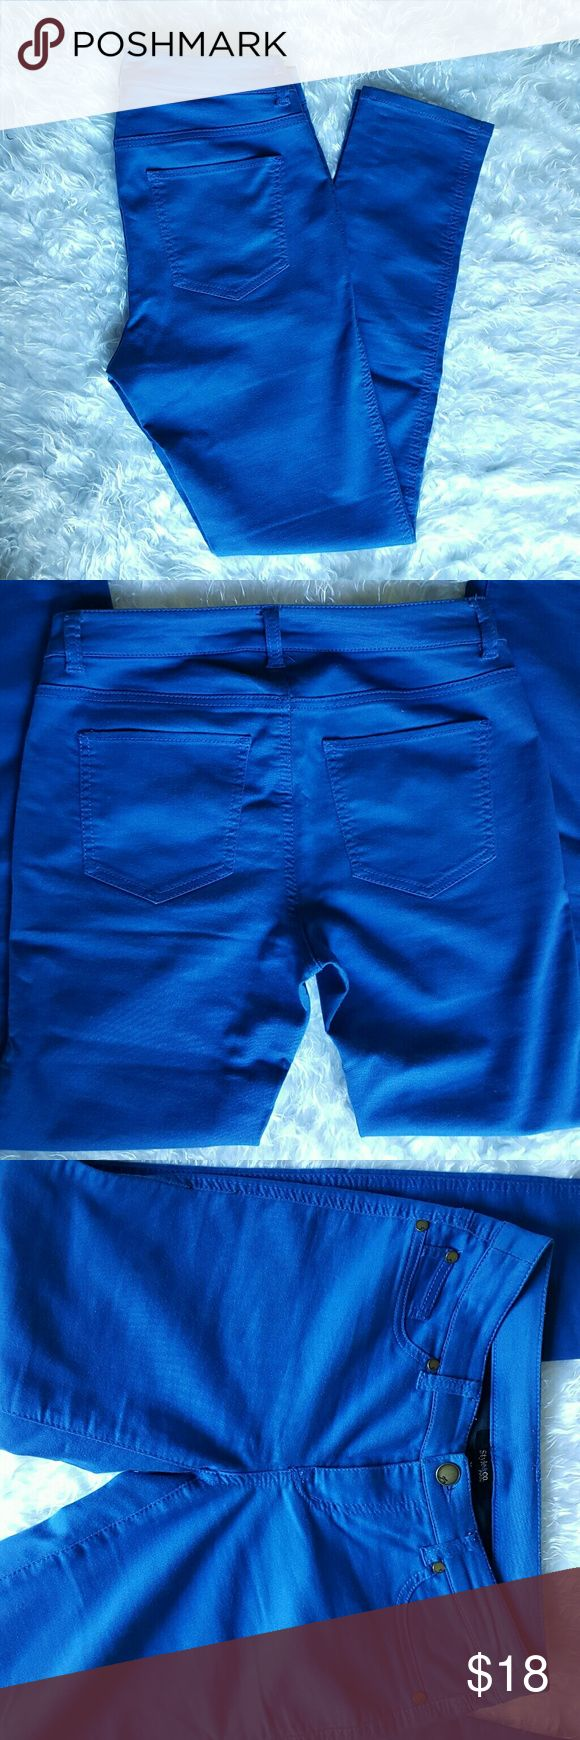 4P Style and Co Electric Blue Skinny Pants 4P! Style and Co Electric Blue Skinny Stretchy Pants. Used once and in excellent condition! Style & Co Jeans Skinny